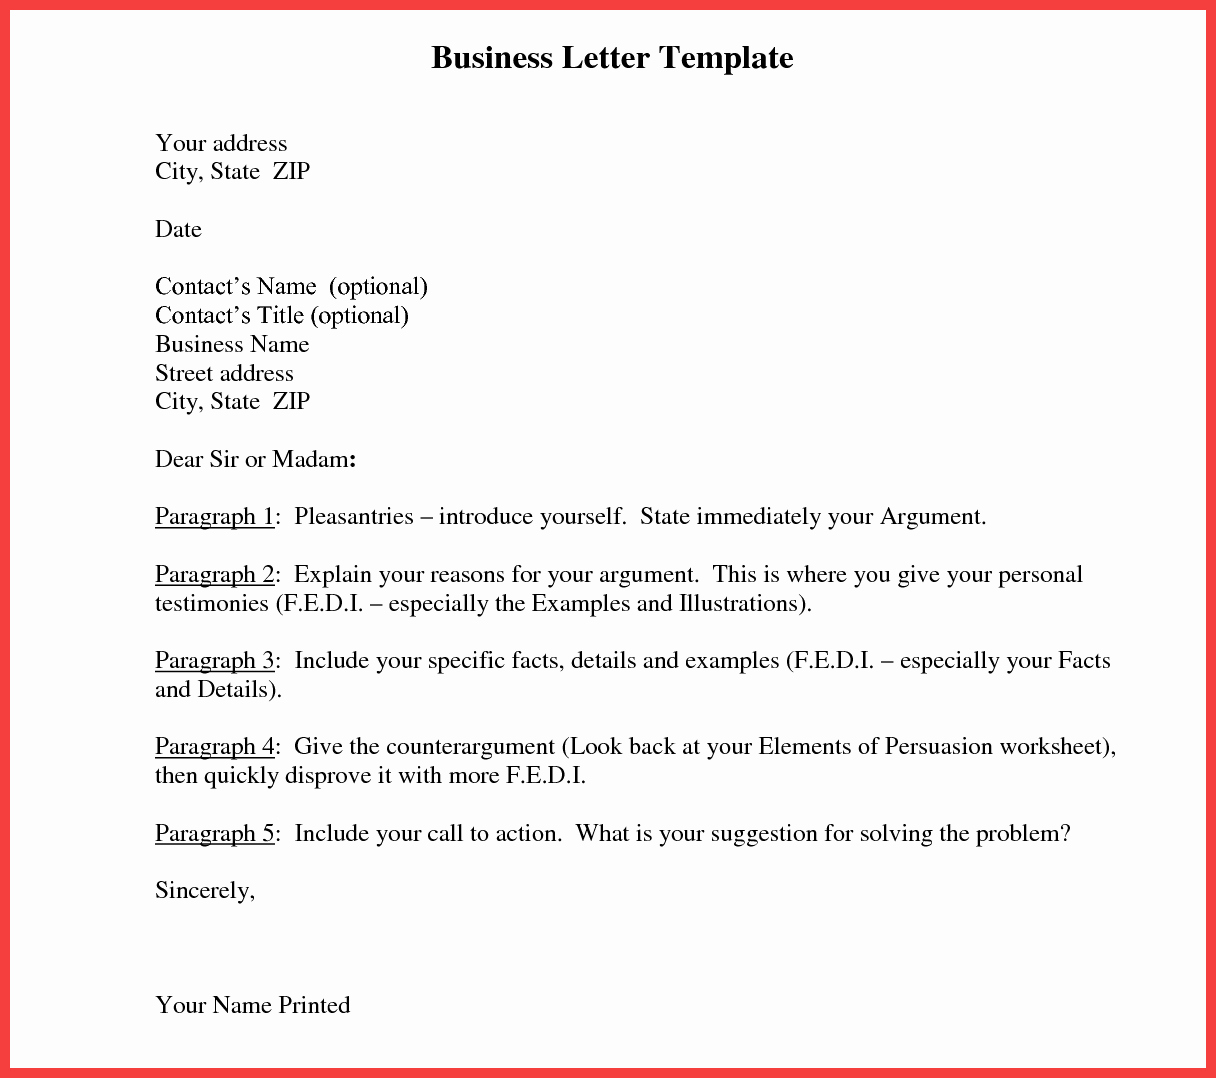 Formal Business Letter Template Word Luxury formal Letter Template Word